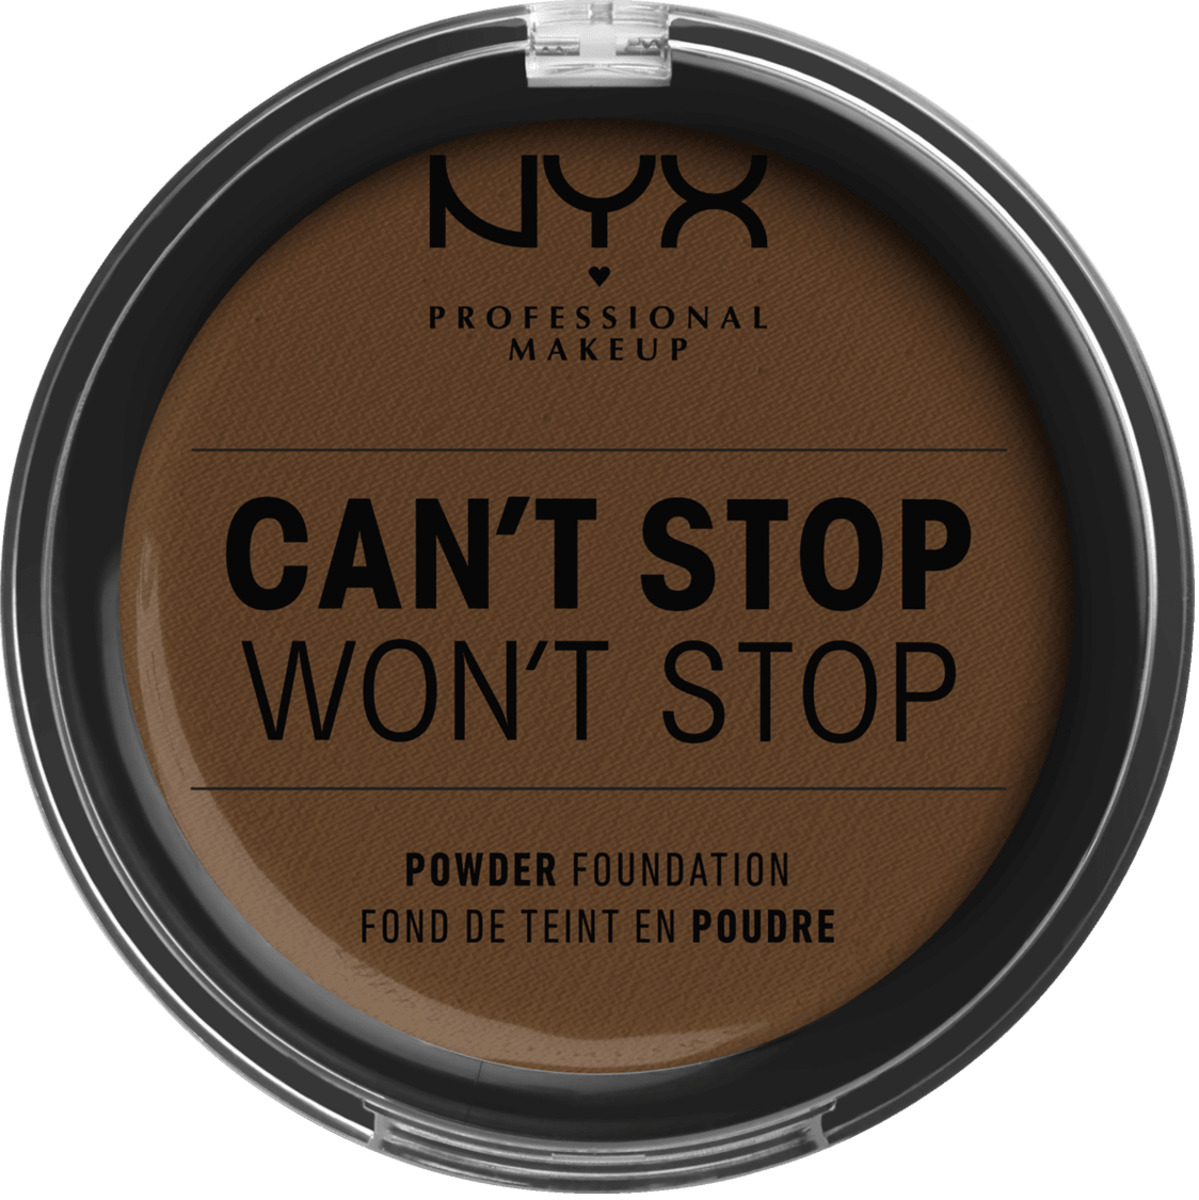 Bild 1 von NYX PROFESSIONAL MAKEUP Foundation Can't Stop Won't Stop Full Coverage Powder Foundation Walnut 22.3